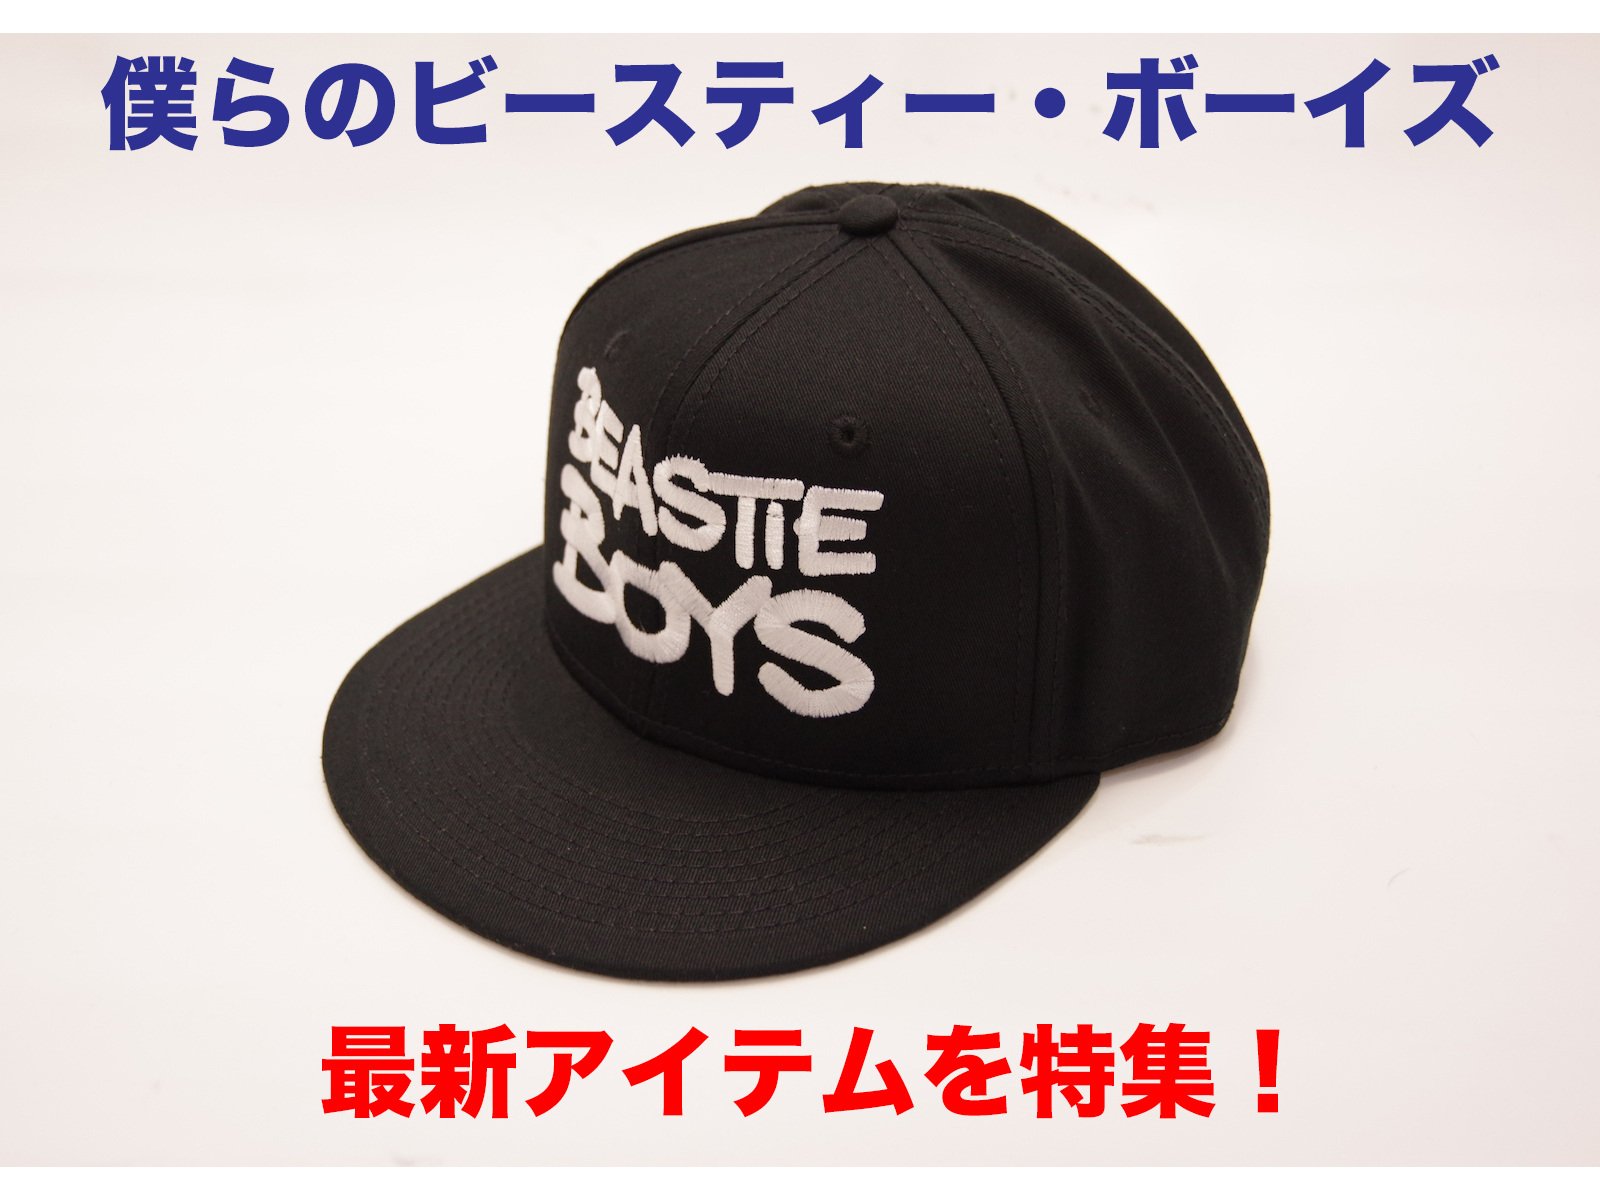 [NEW ITEM] – BEASTIE BOYS